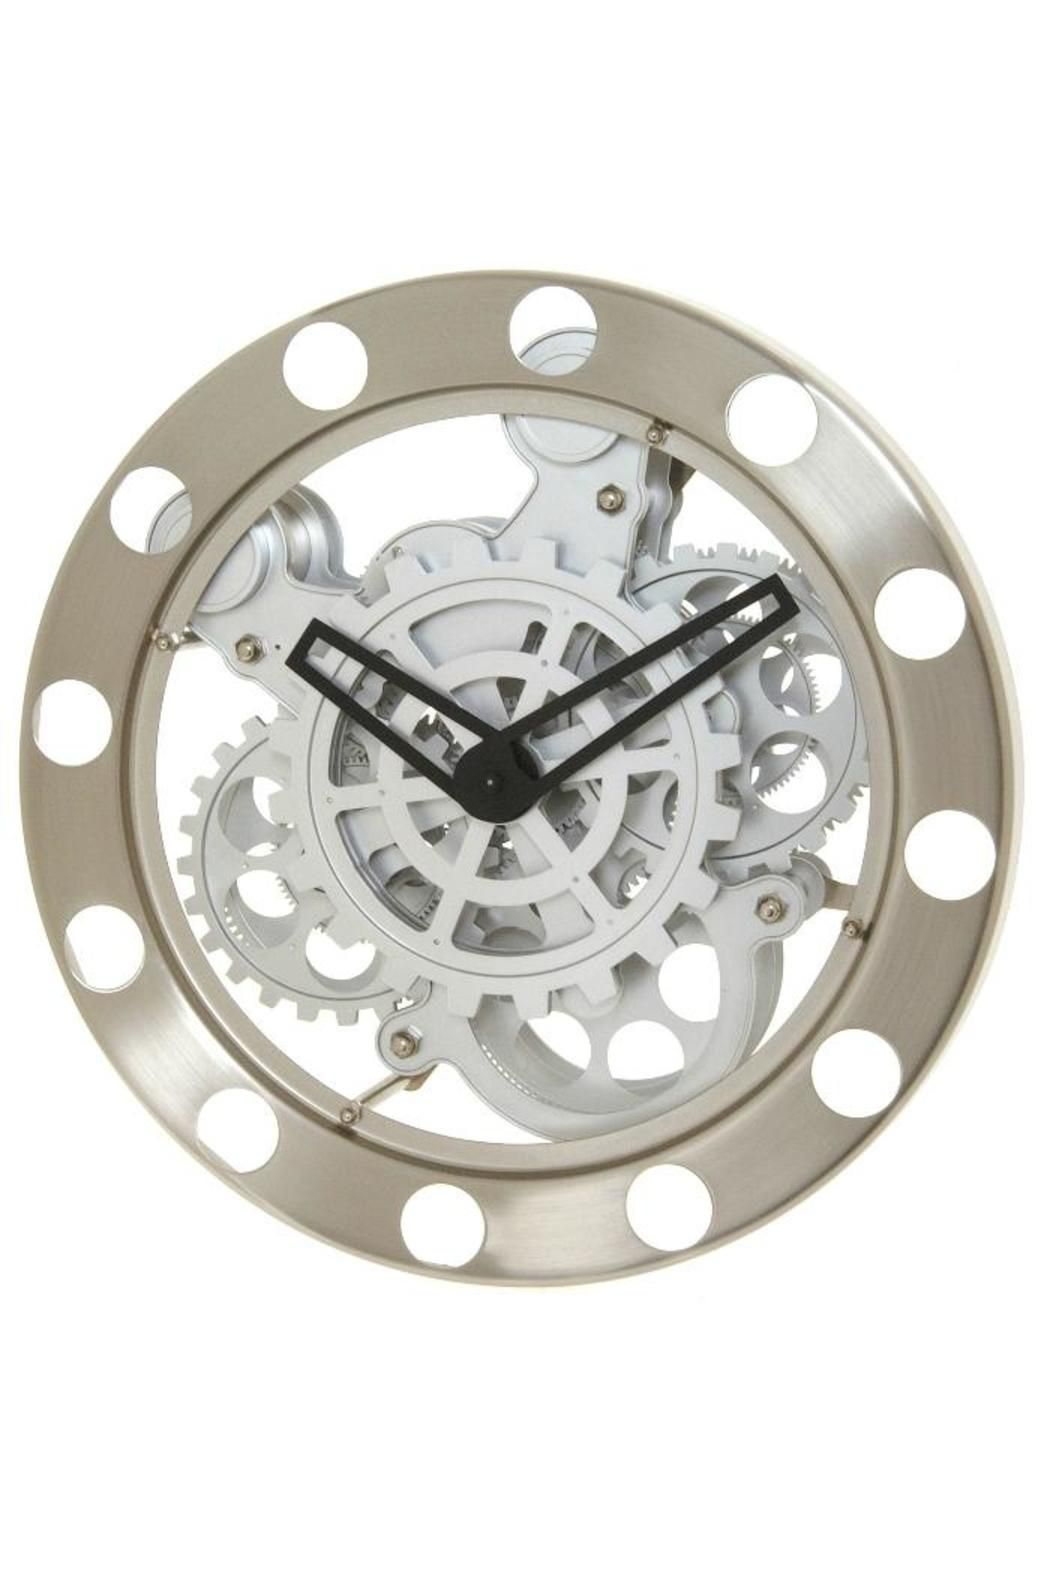 This Impressive Wall Clock With Large, Visible Moving Gears Is A Favorite  Of Engineers,